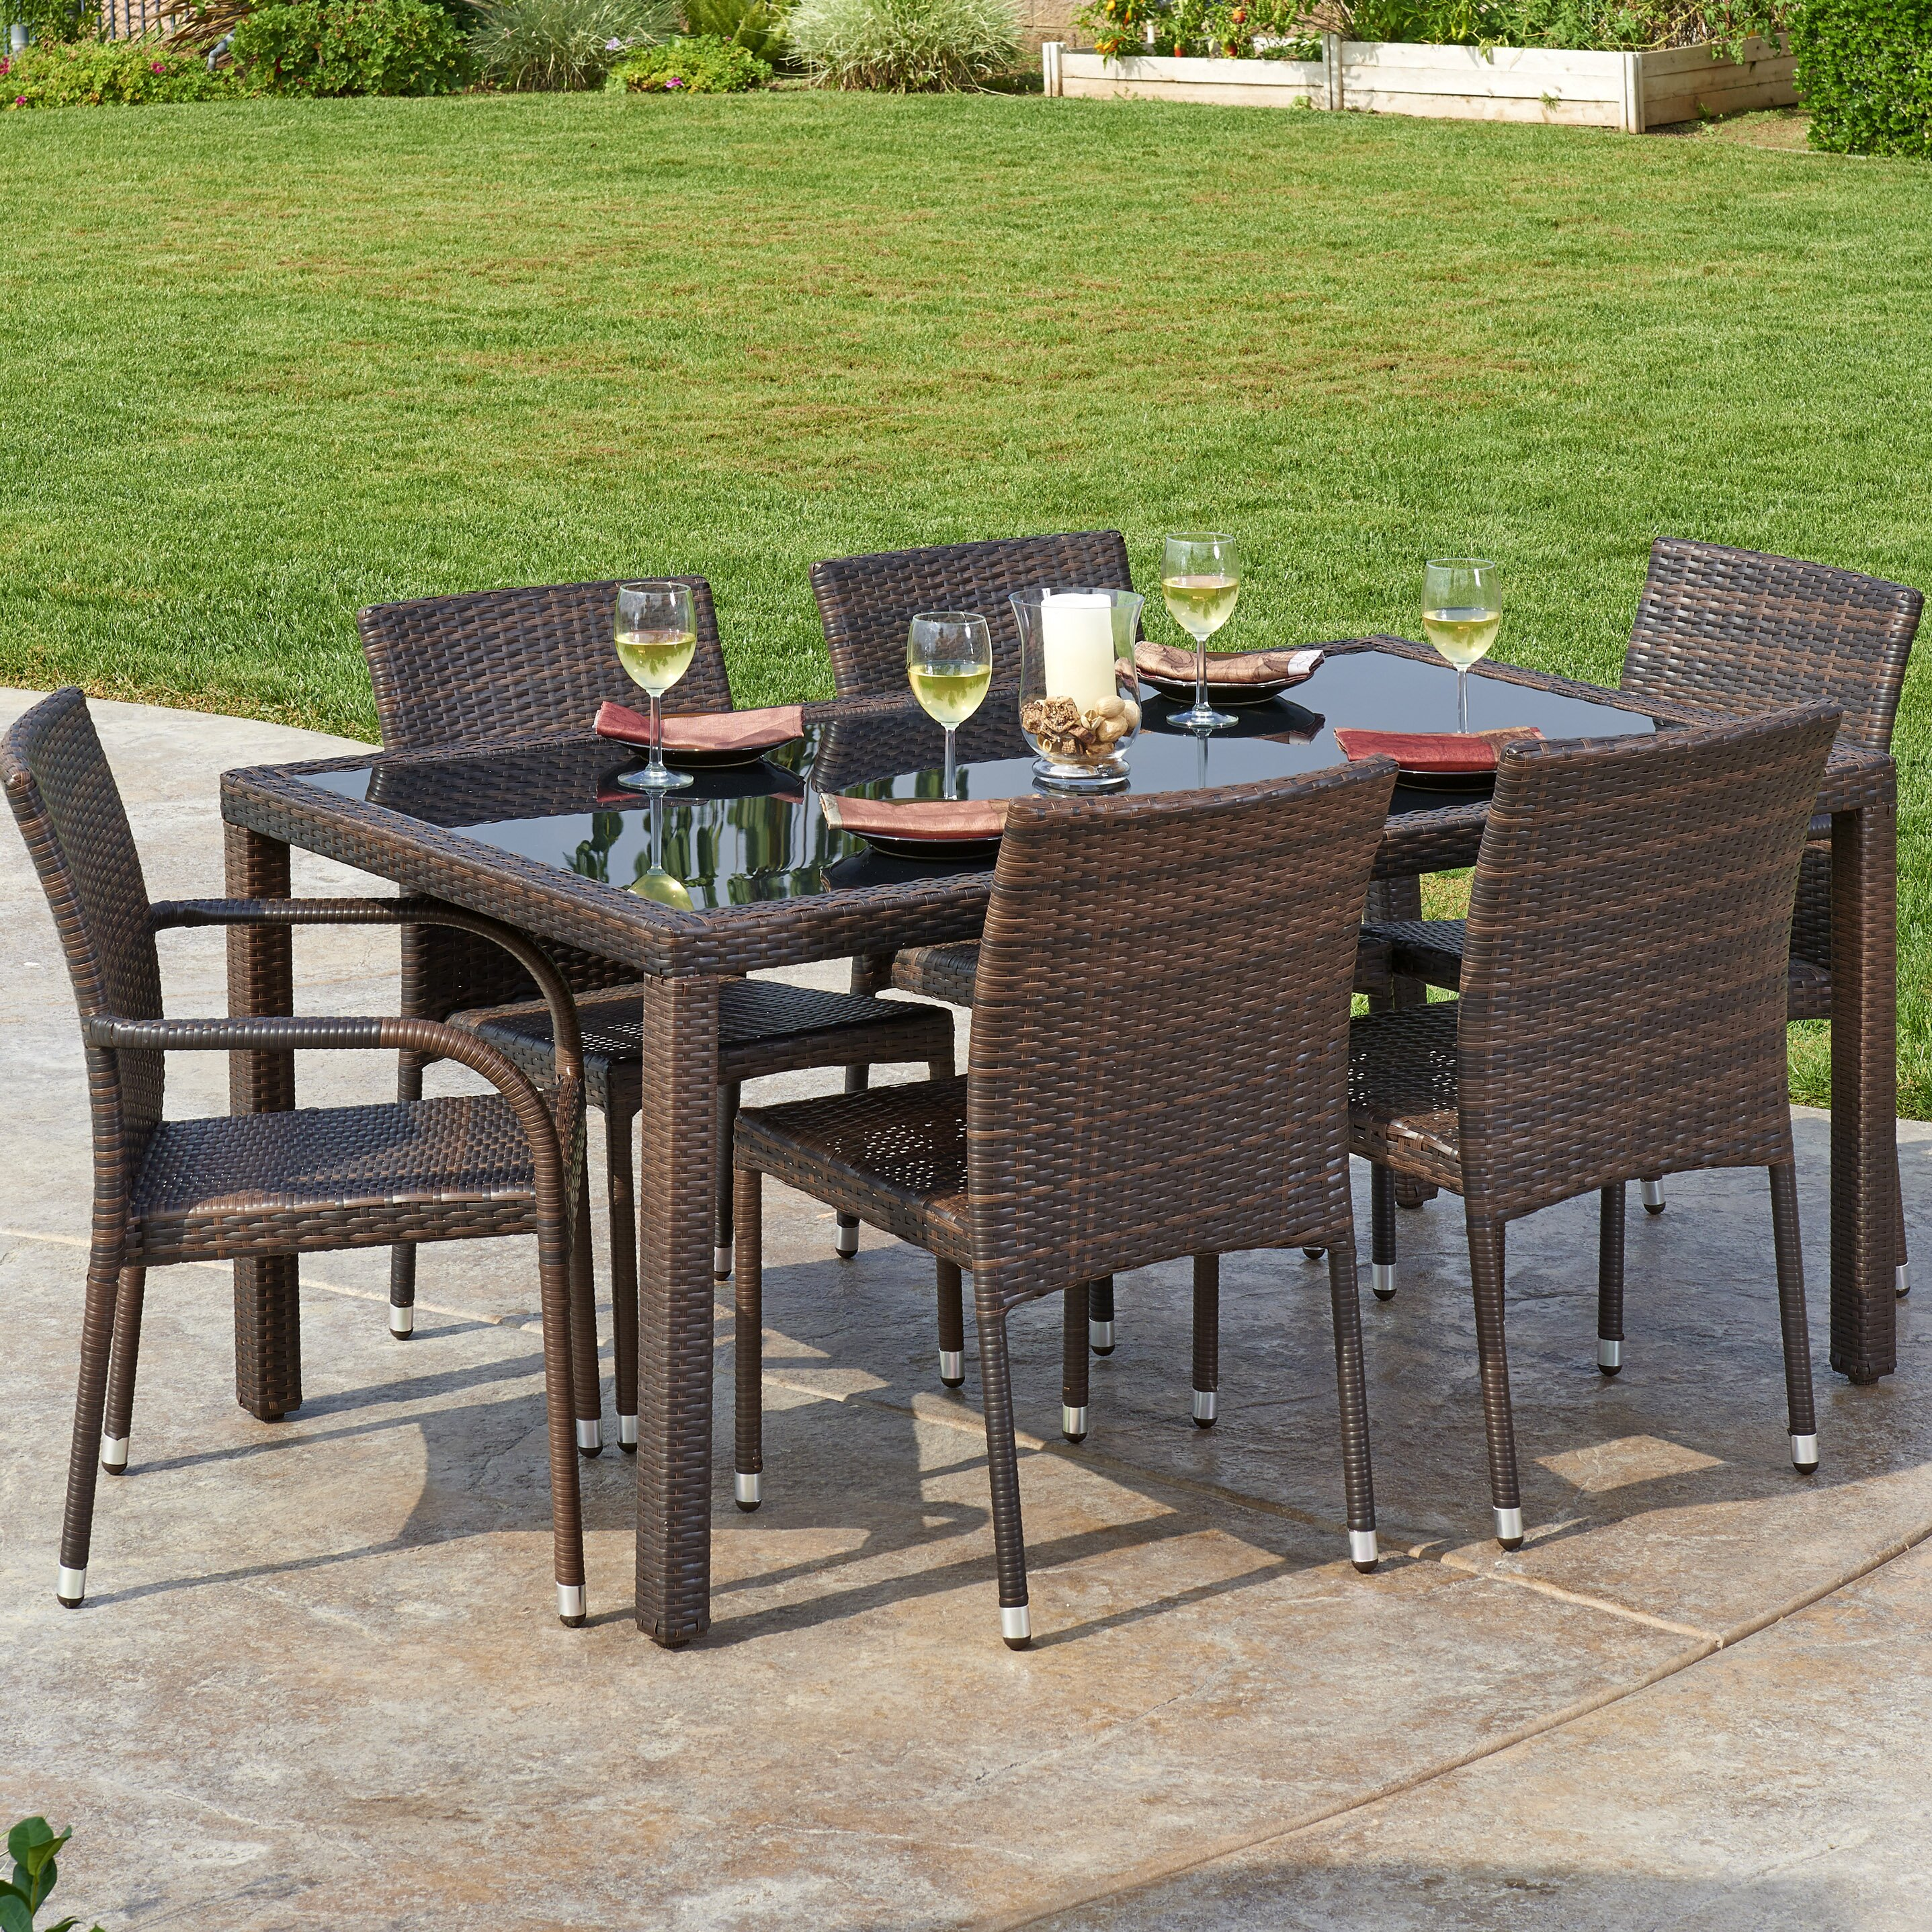 W unlimited 7 piece outdoor wicker dining set reviews for Outdoor furniture hwy 7